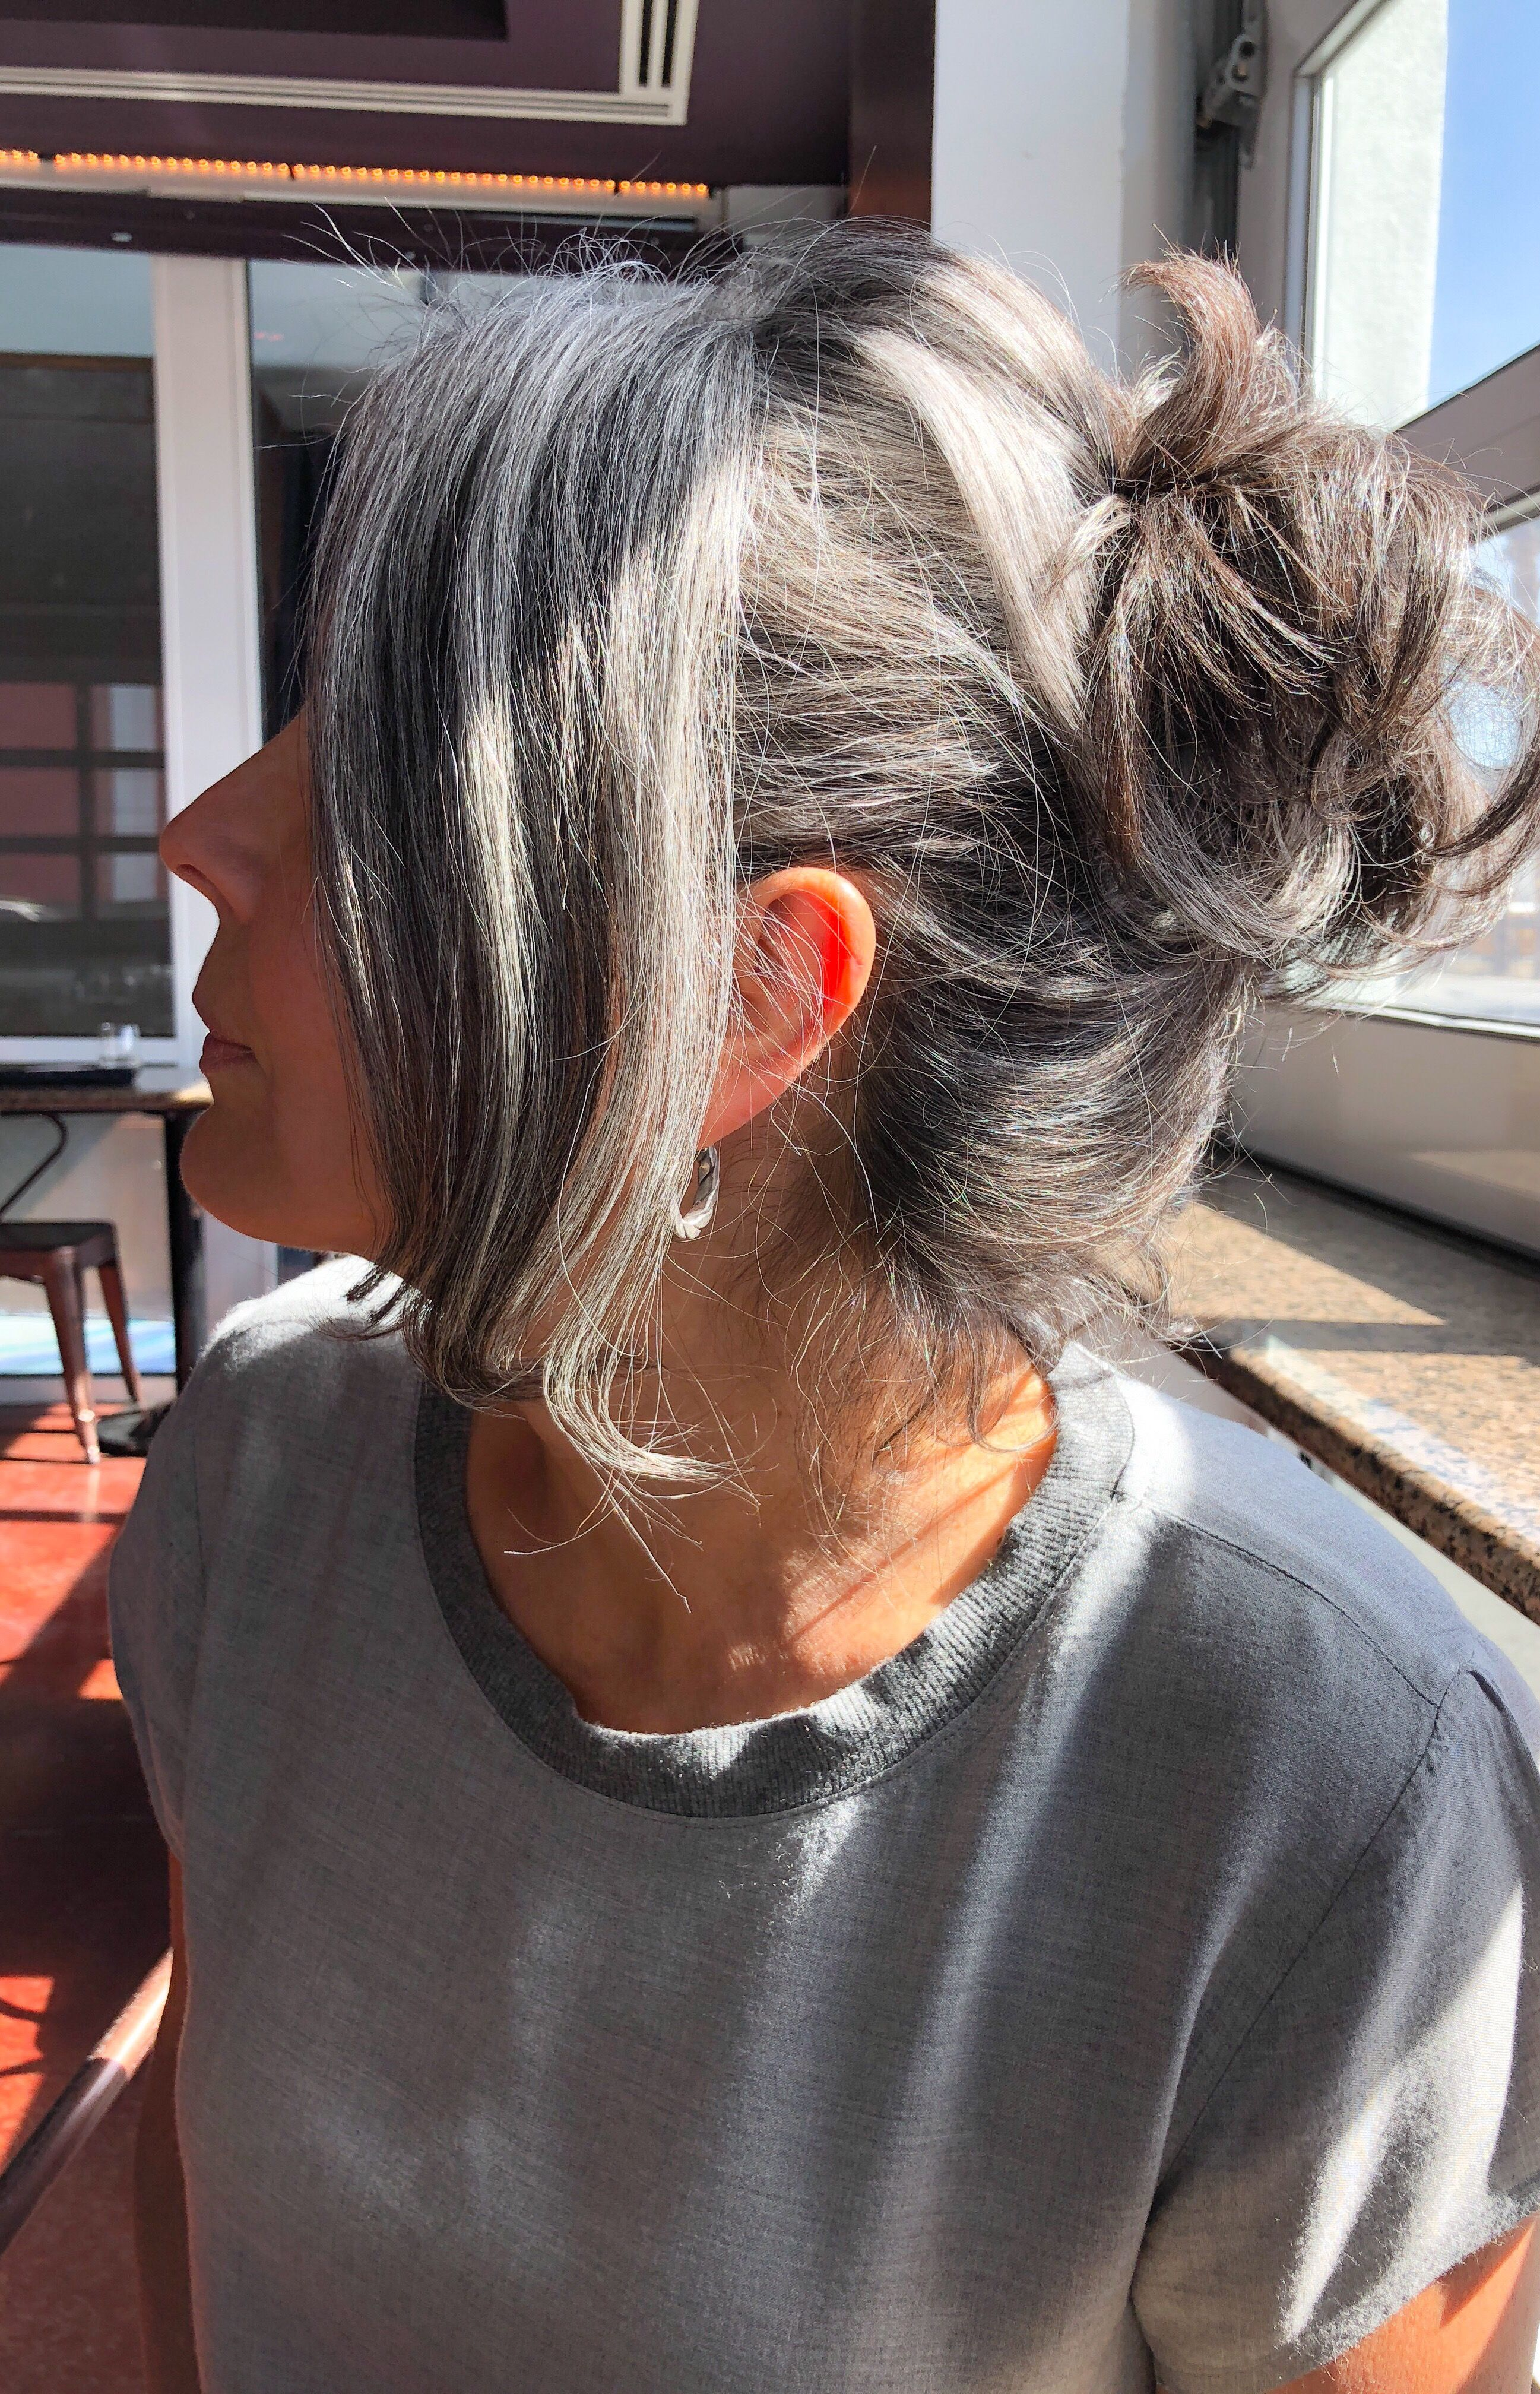 Pin by Matt mallon on Growing out my gray hair | Gray hair growing out,  Long gray hair, Blending gray hair